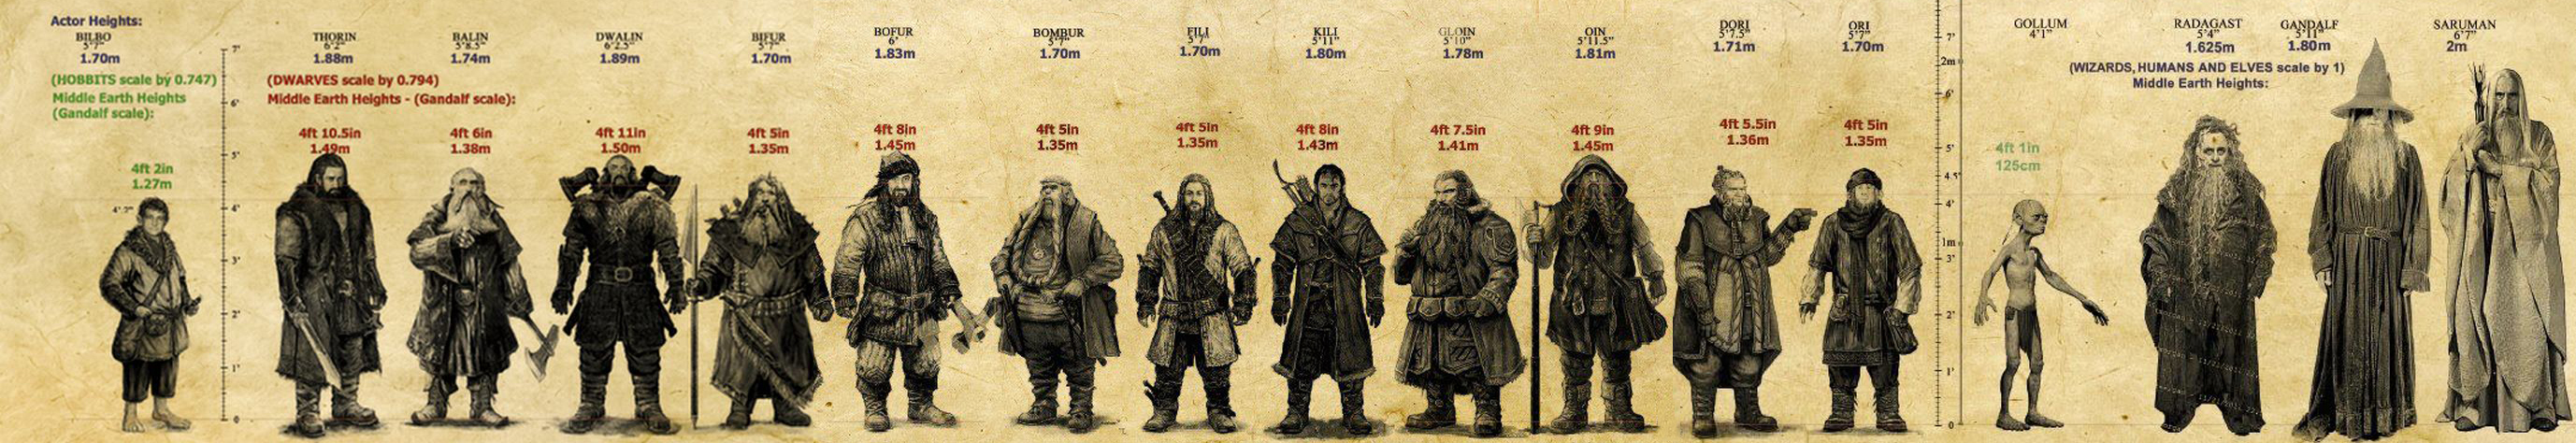 Lord Of The Rings Main Dwarf Name